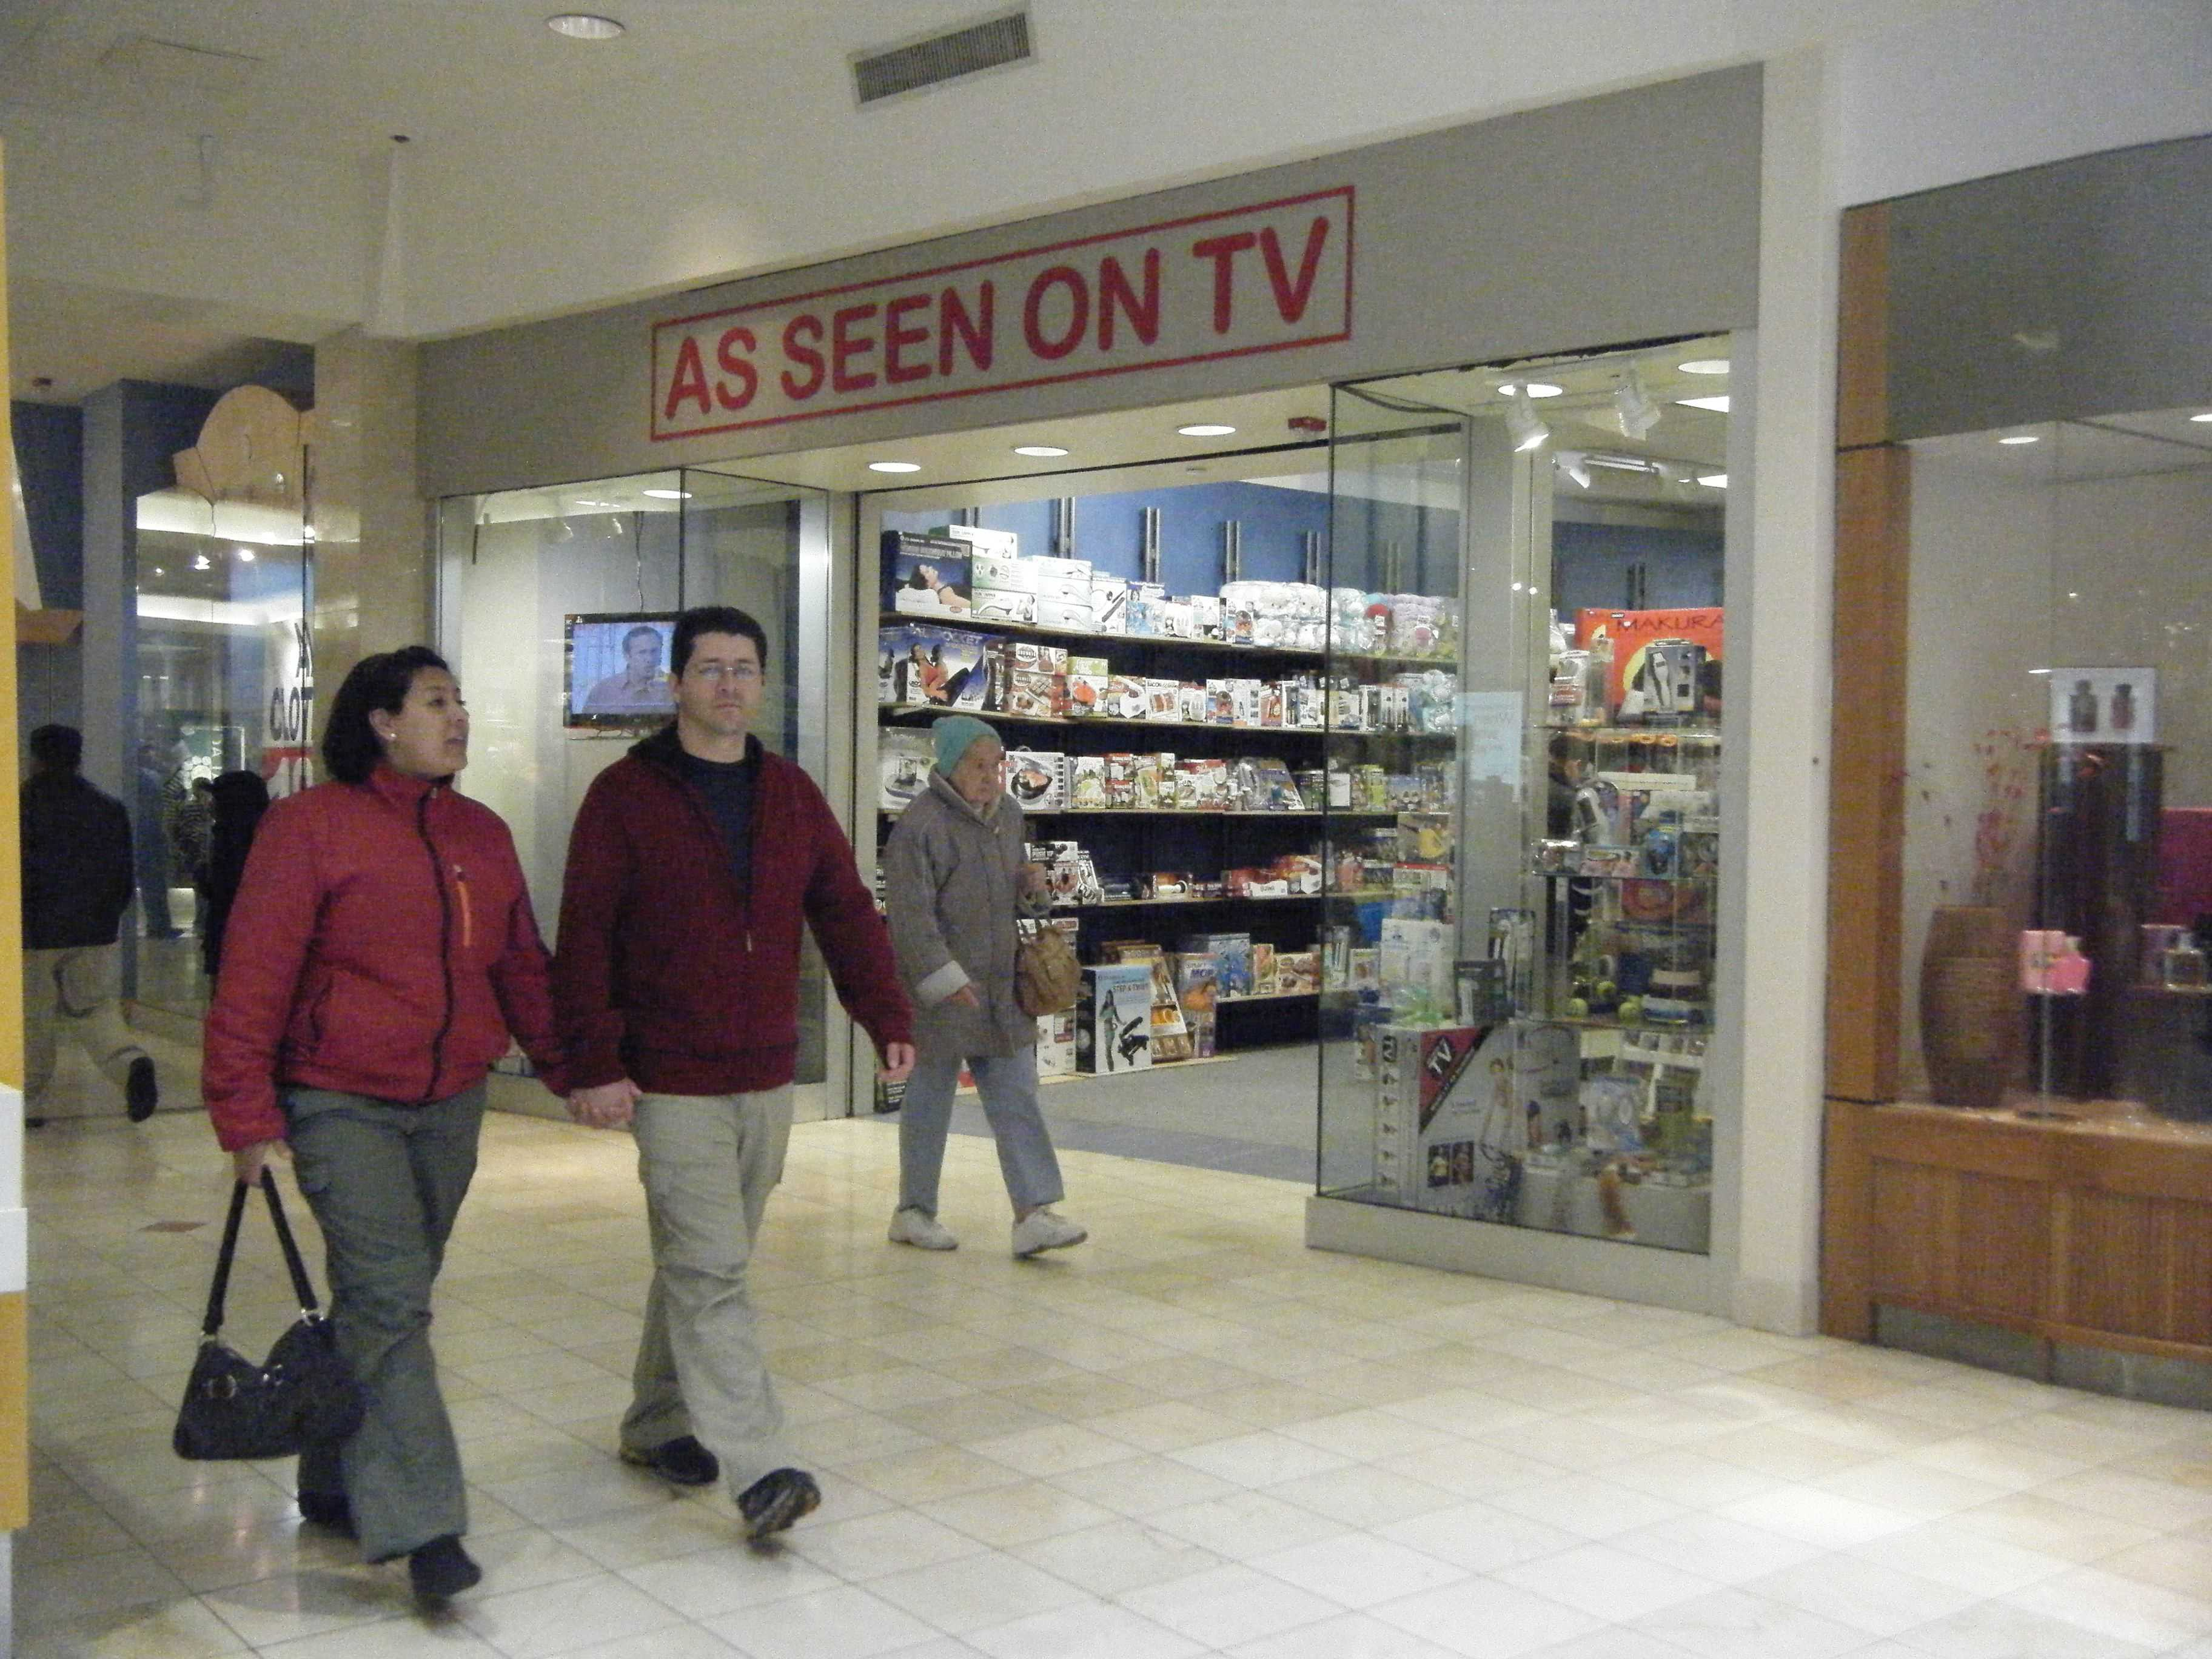 The Observer : 'As Seen on TV' brings TV products to mall